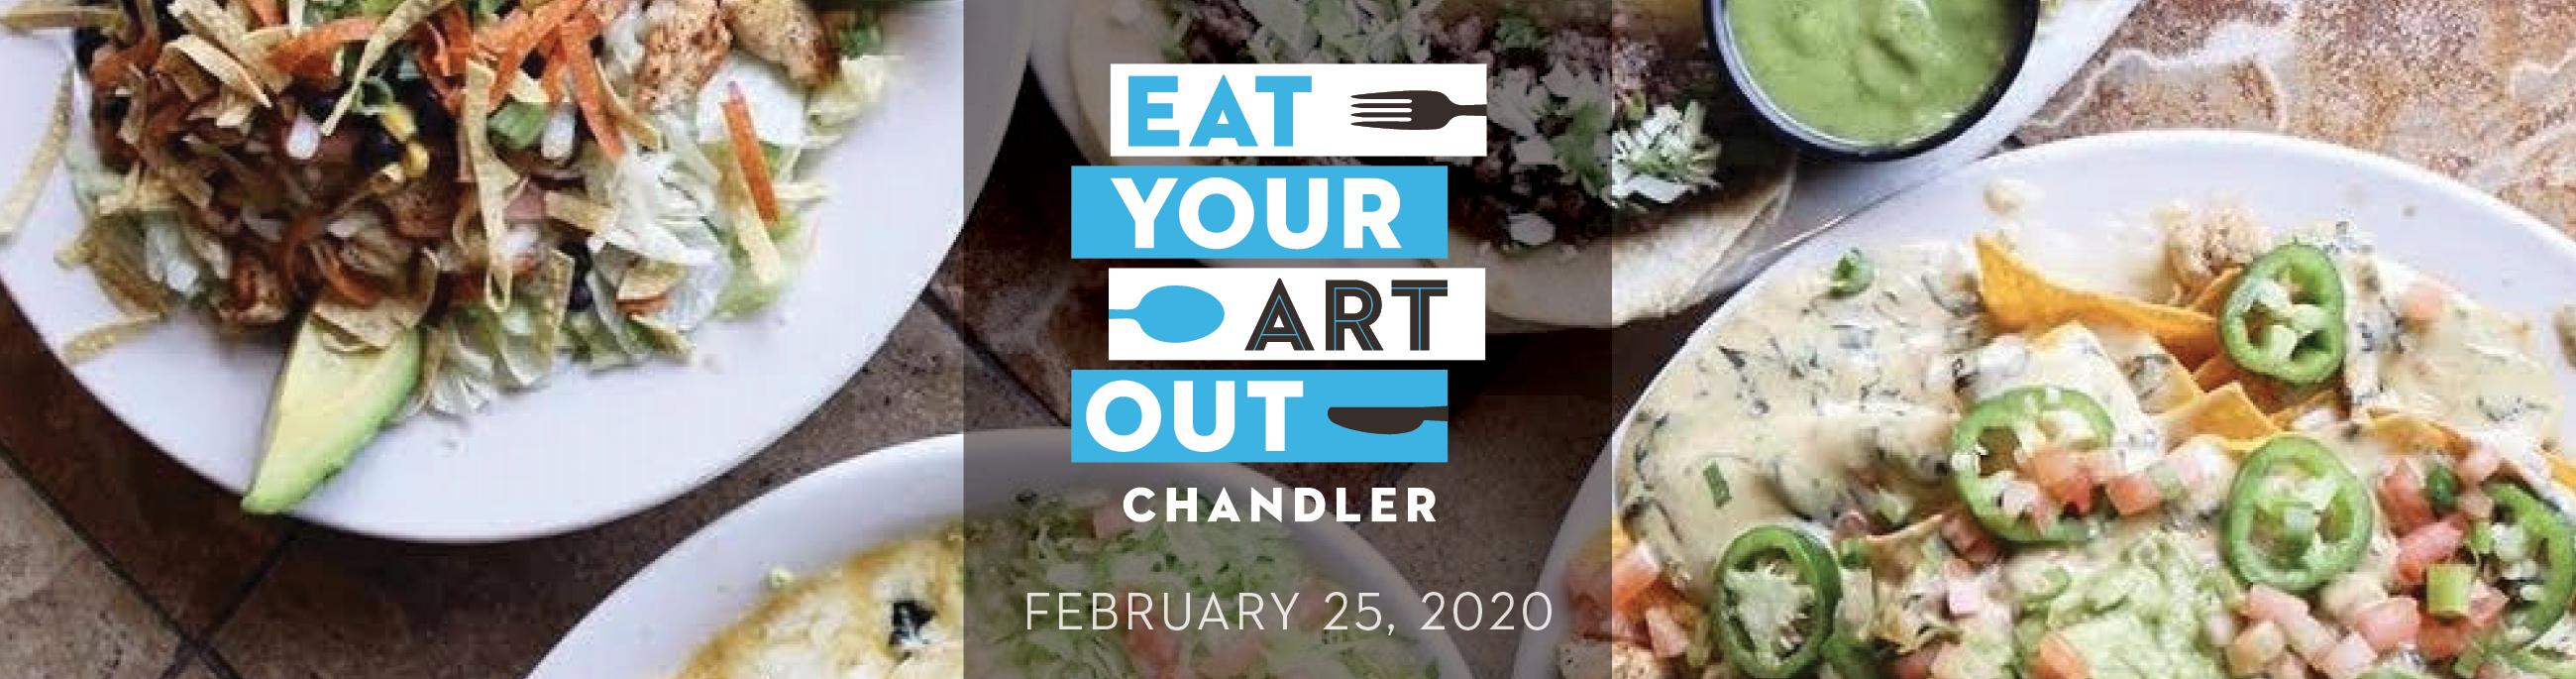 Eat Your Art Out Restaurant Sign Up Form